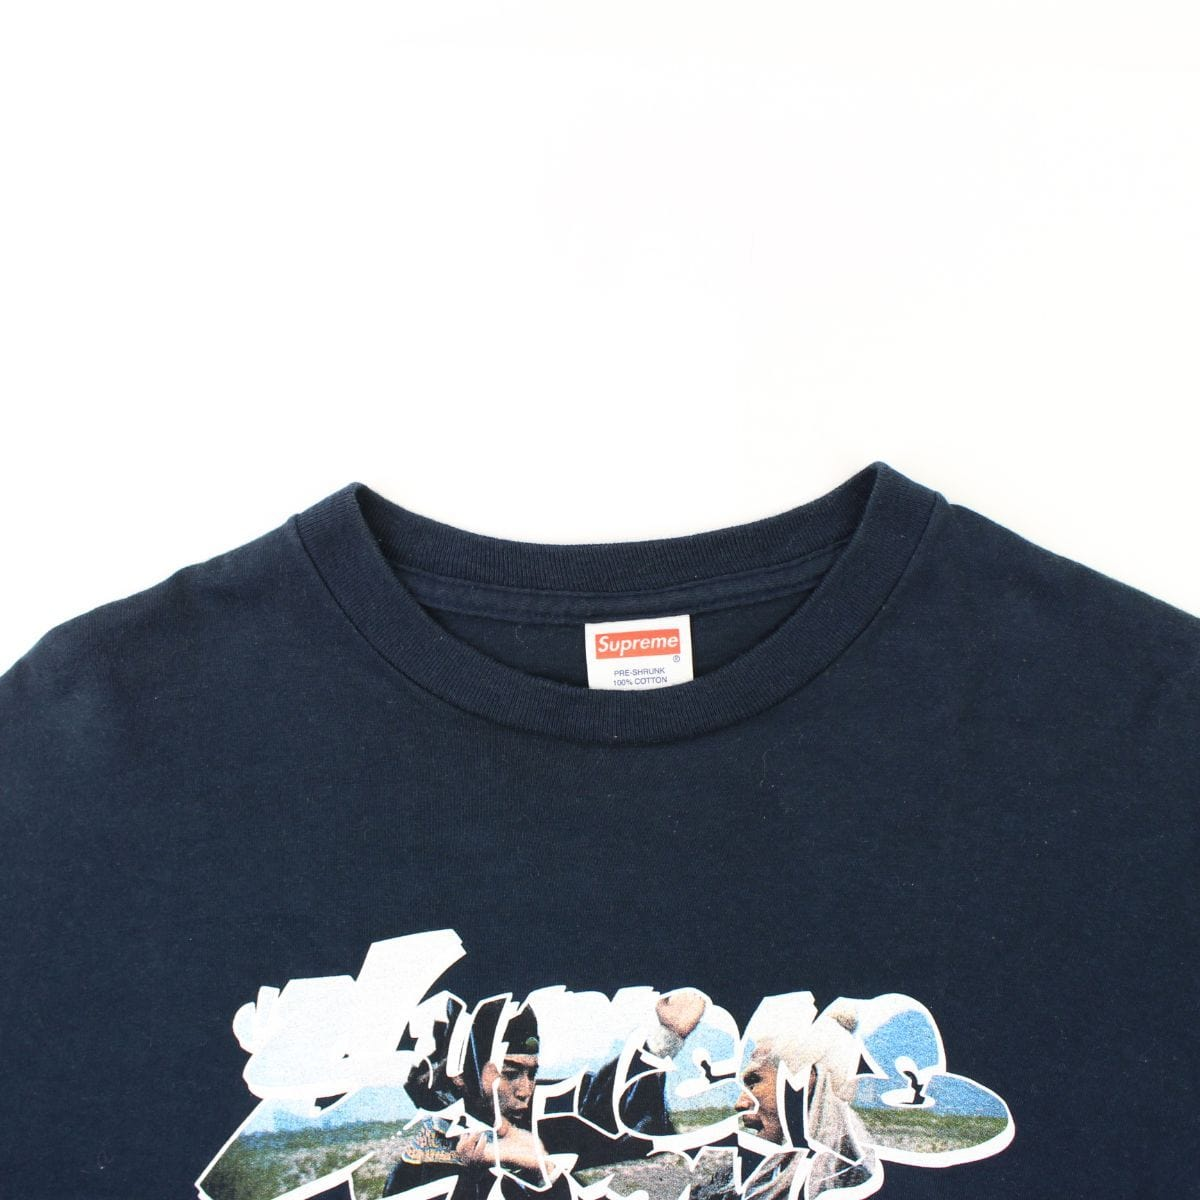 Supreme Team Text Tee Navy - SaruGeneral